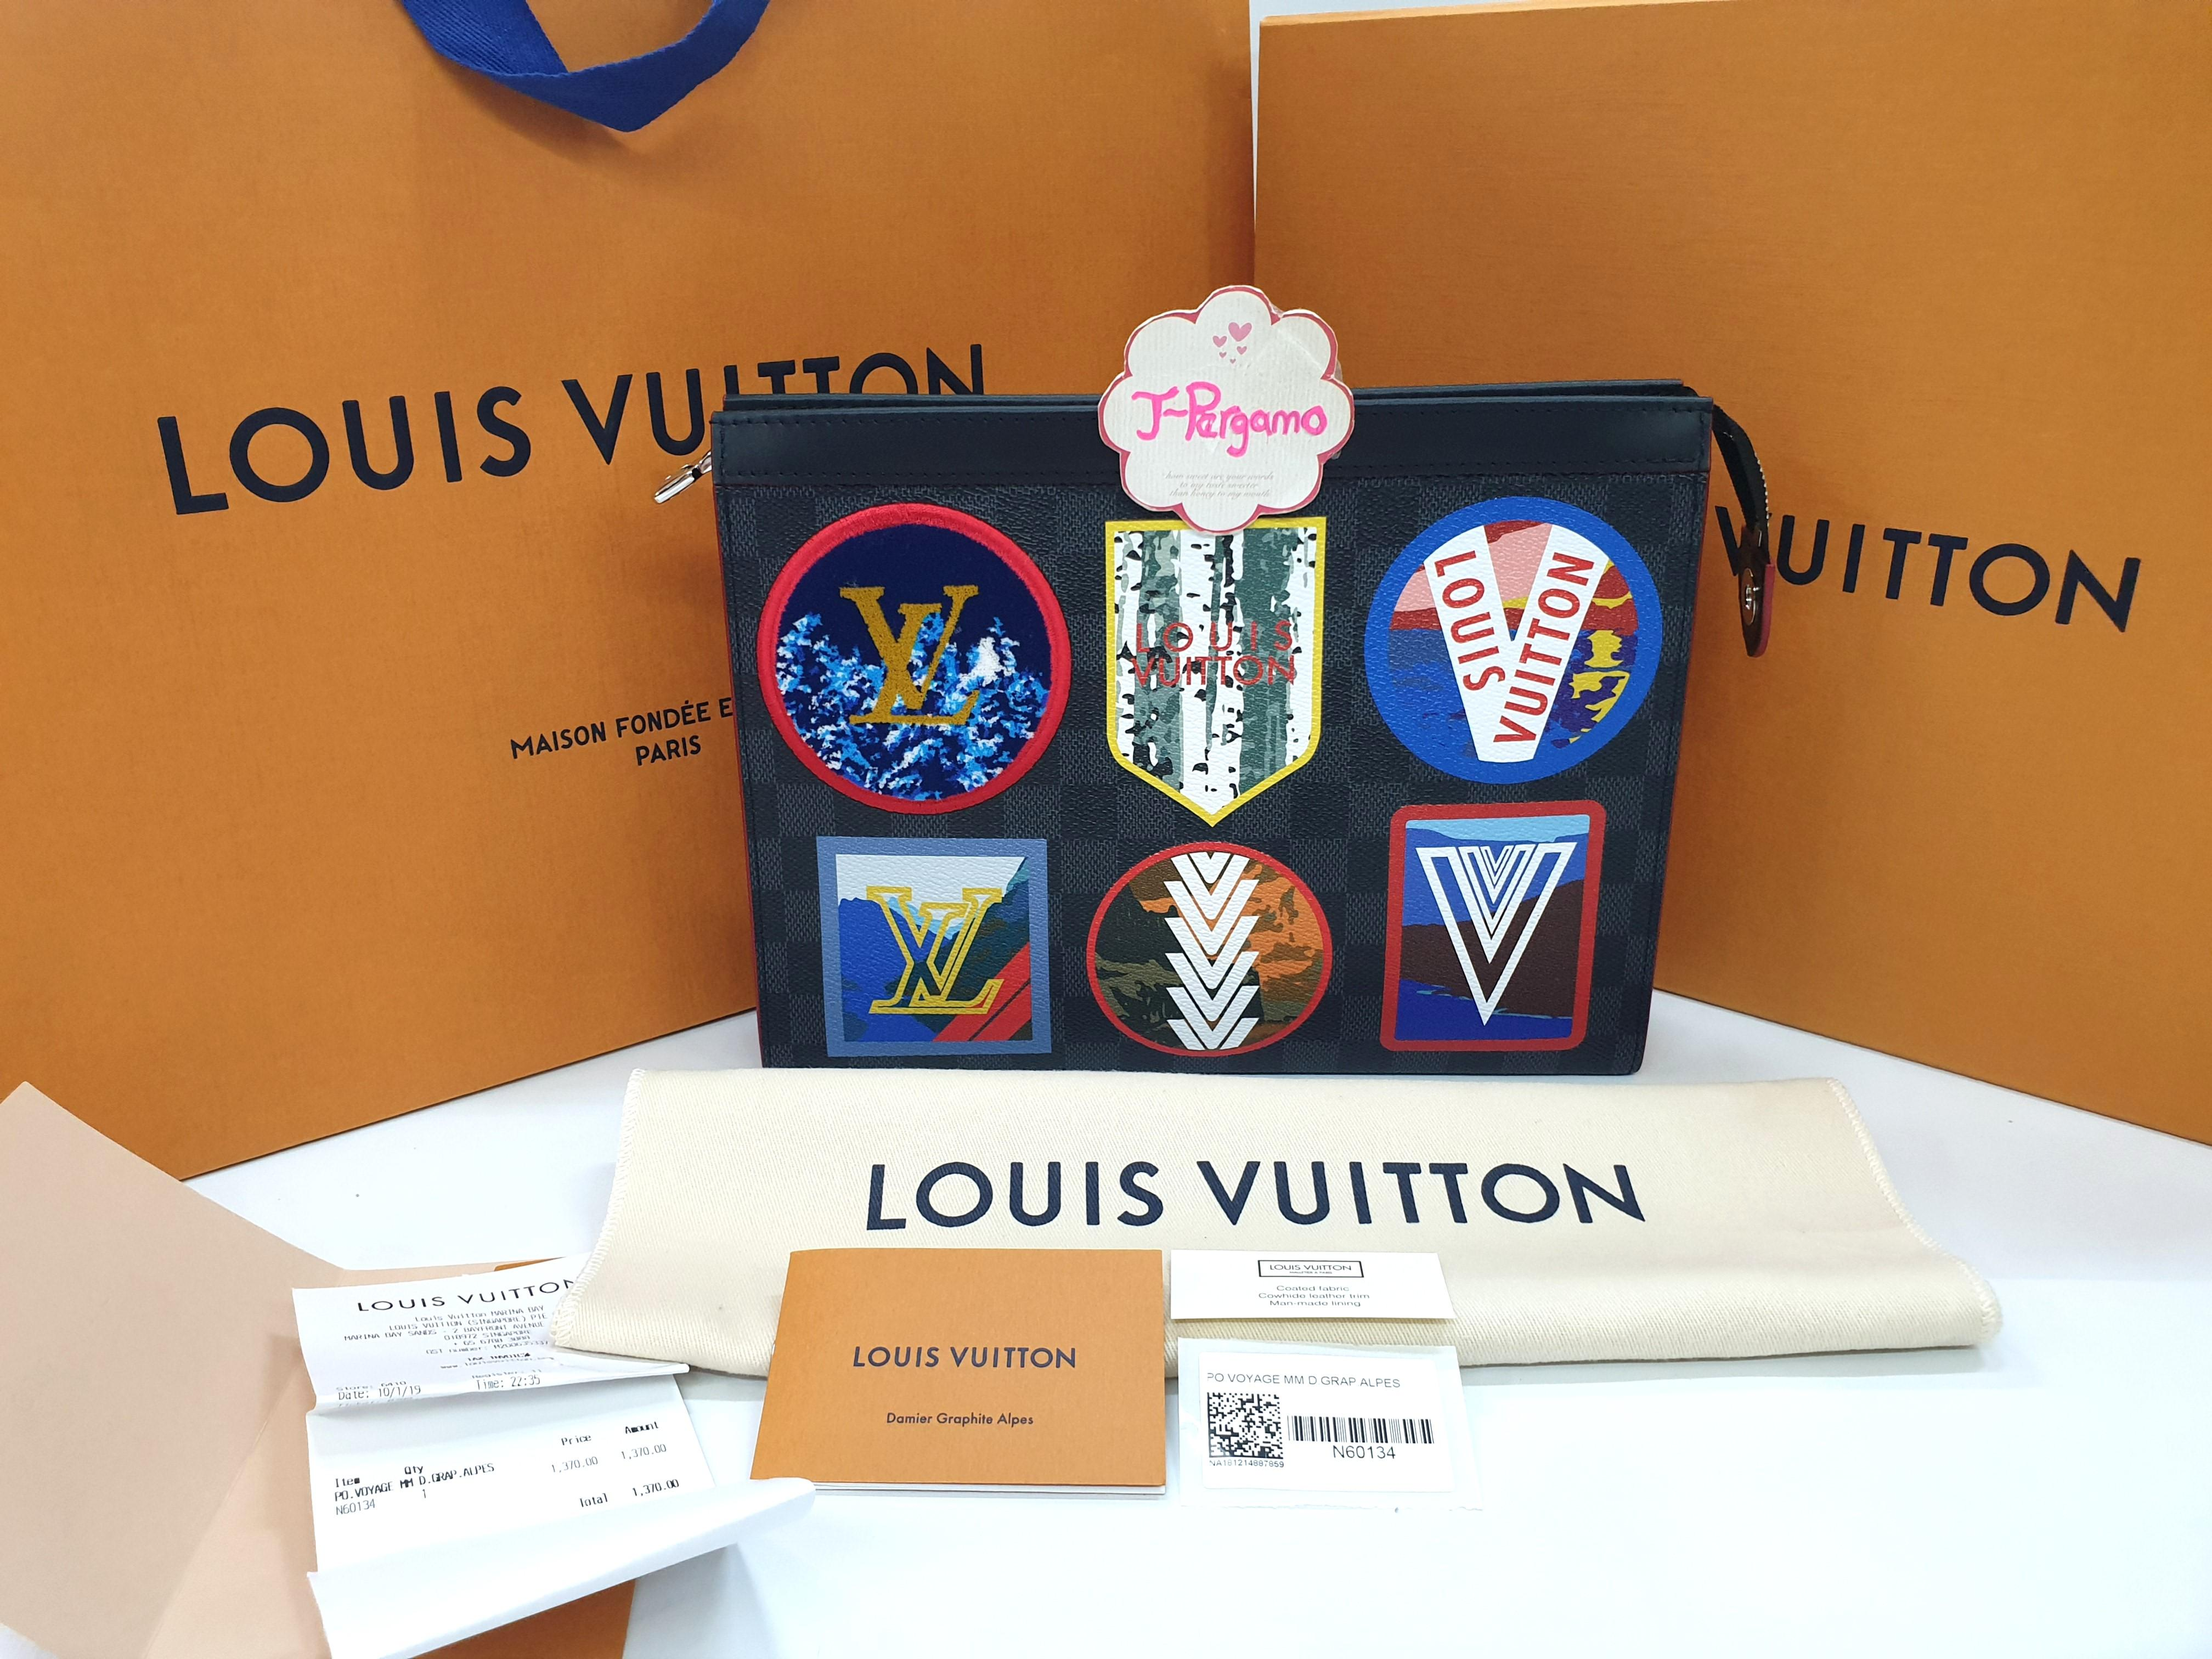 Brand New! Louis Vuitton Damier Graphite Pochette Voyage N60134 {{Only For Sale}}**No Trade**{{Fixed Price}}**定价**